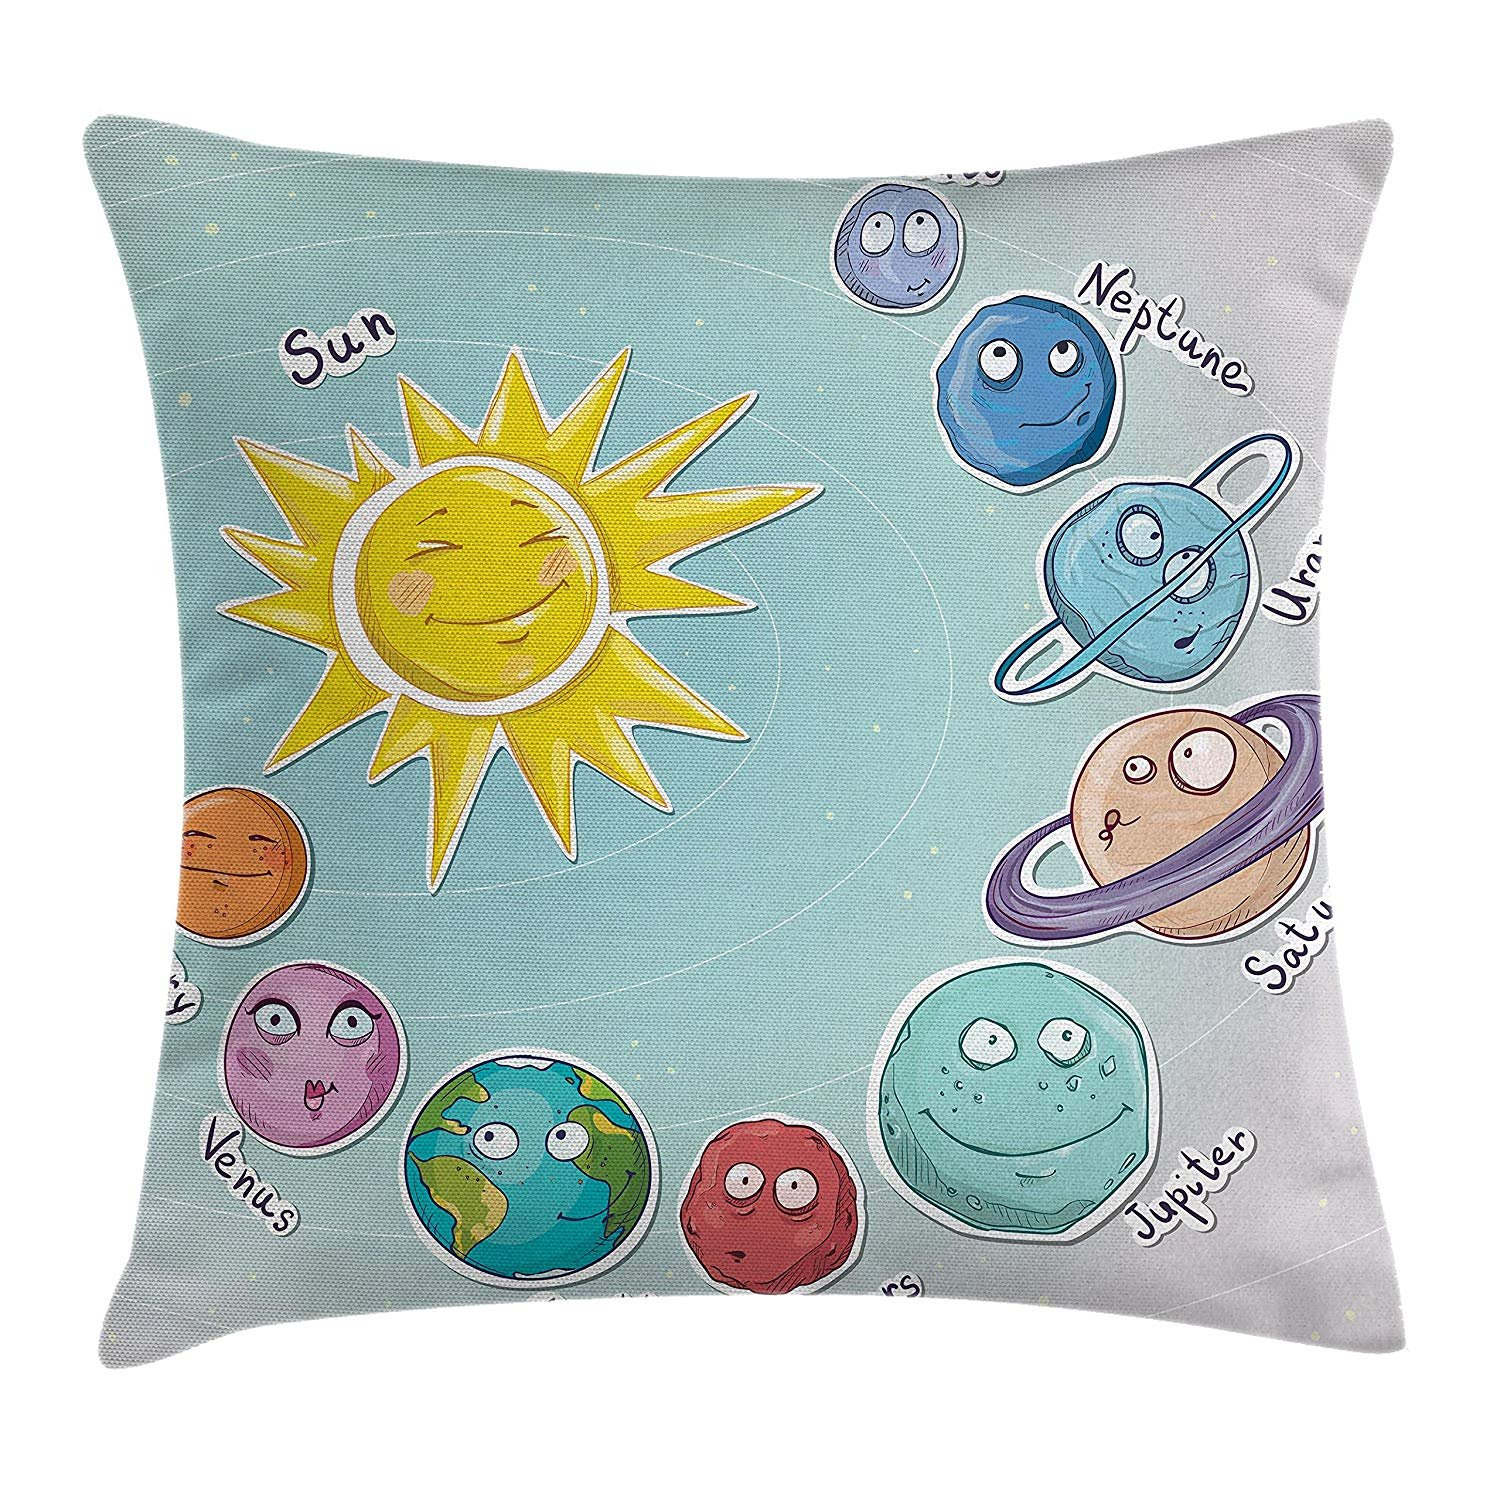 Queen Area Space Cute Cartoon Sun Planets Solar System Fun Celestial Chart Baby Kids Nursery Theme Square Throw Pillow Covers Cushion Case Sofa Bedroom Car 18x18 Inch, Multi